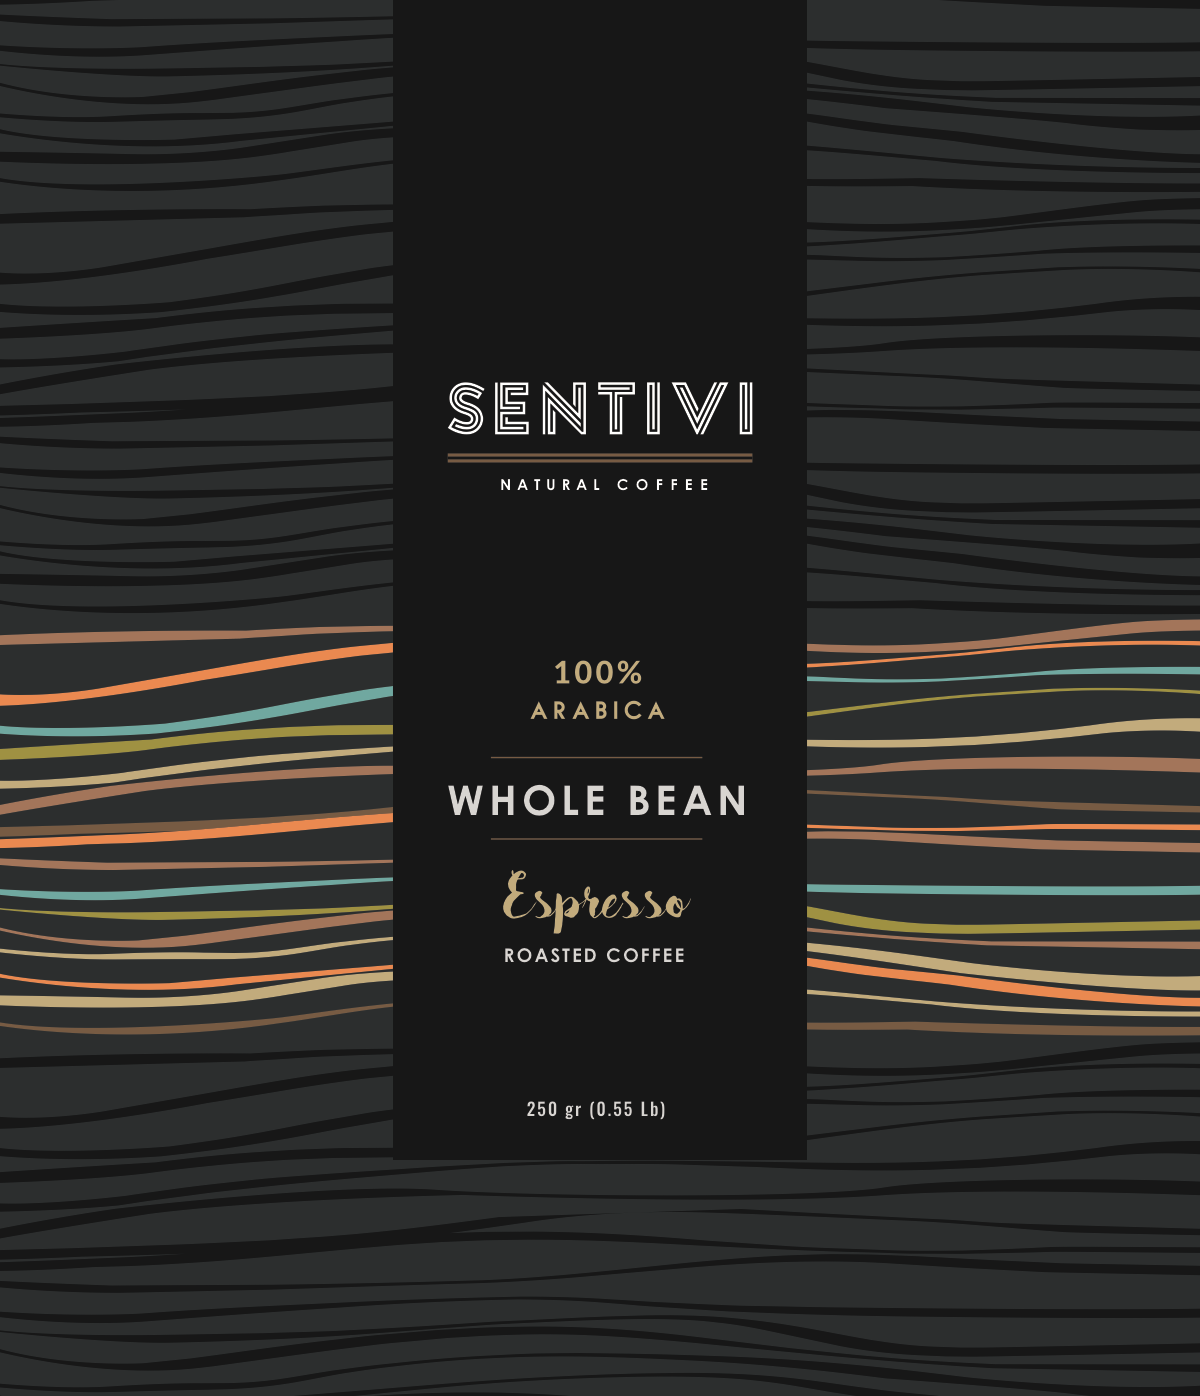 Buy design #126 for Sentivi coffee.